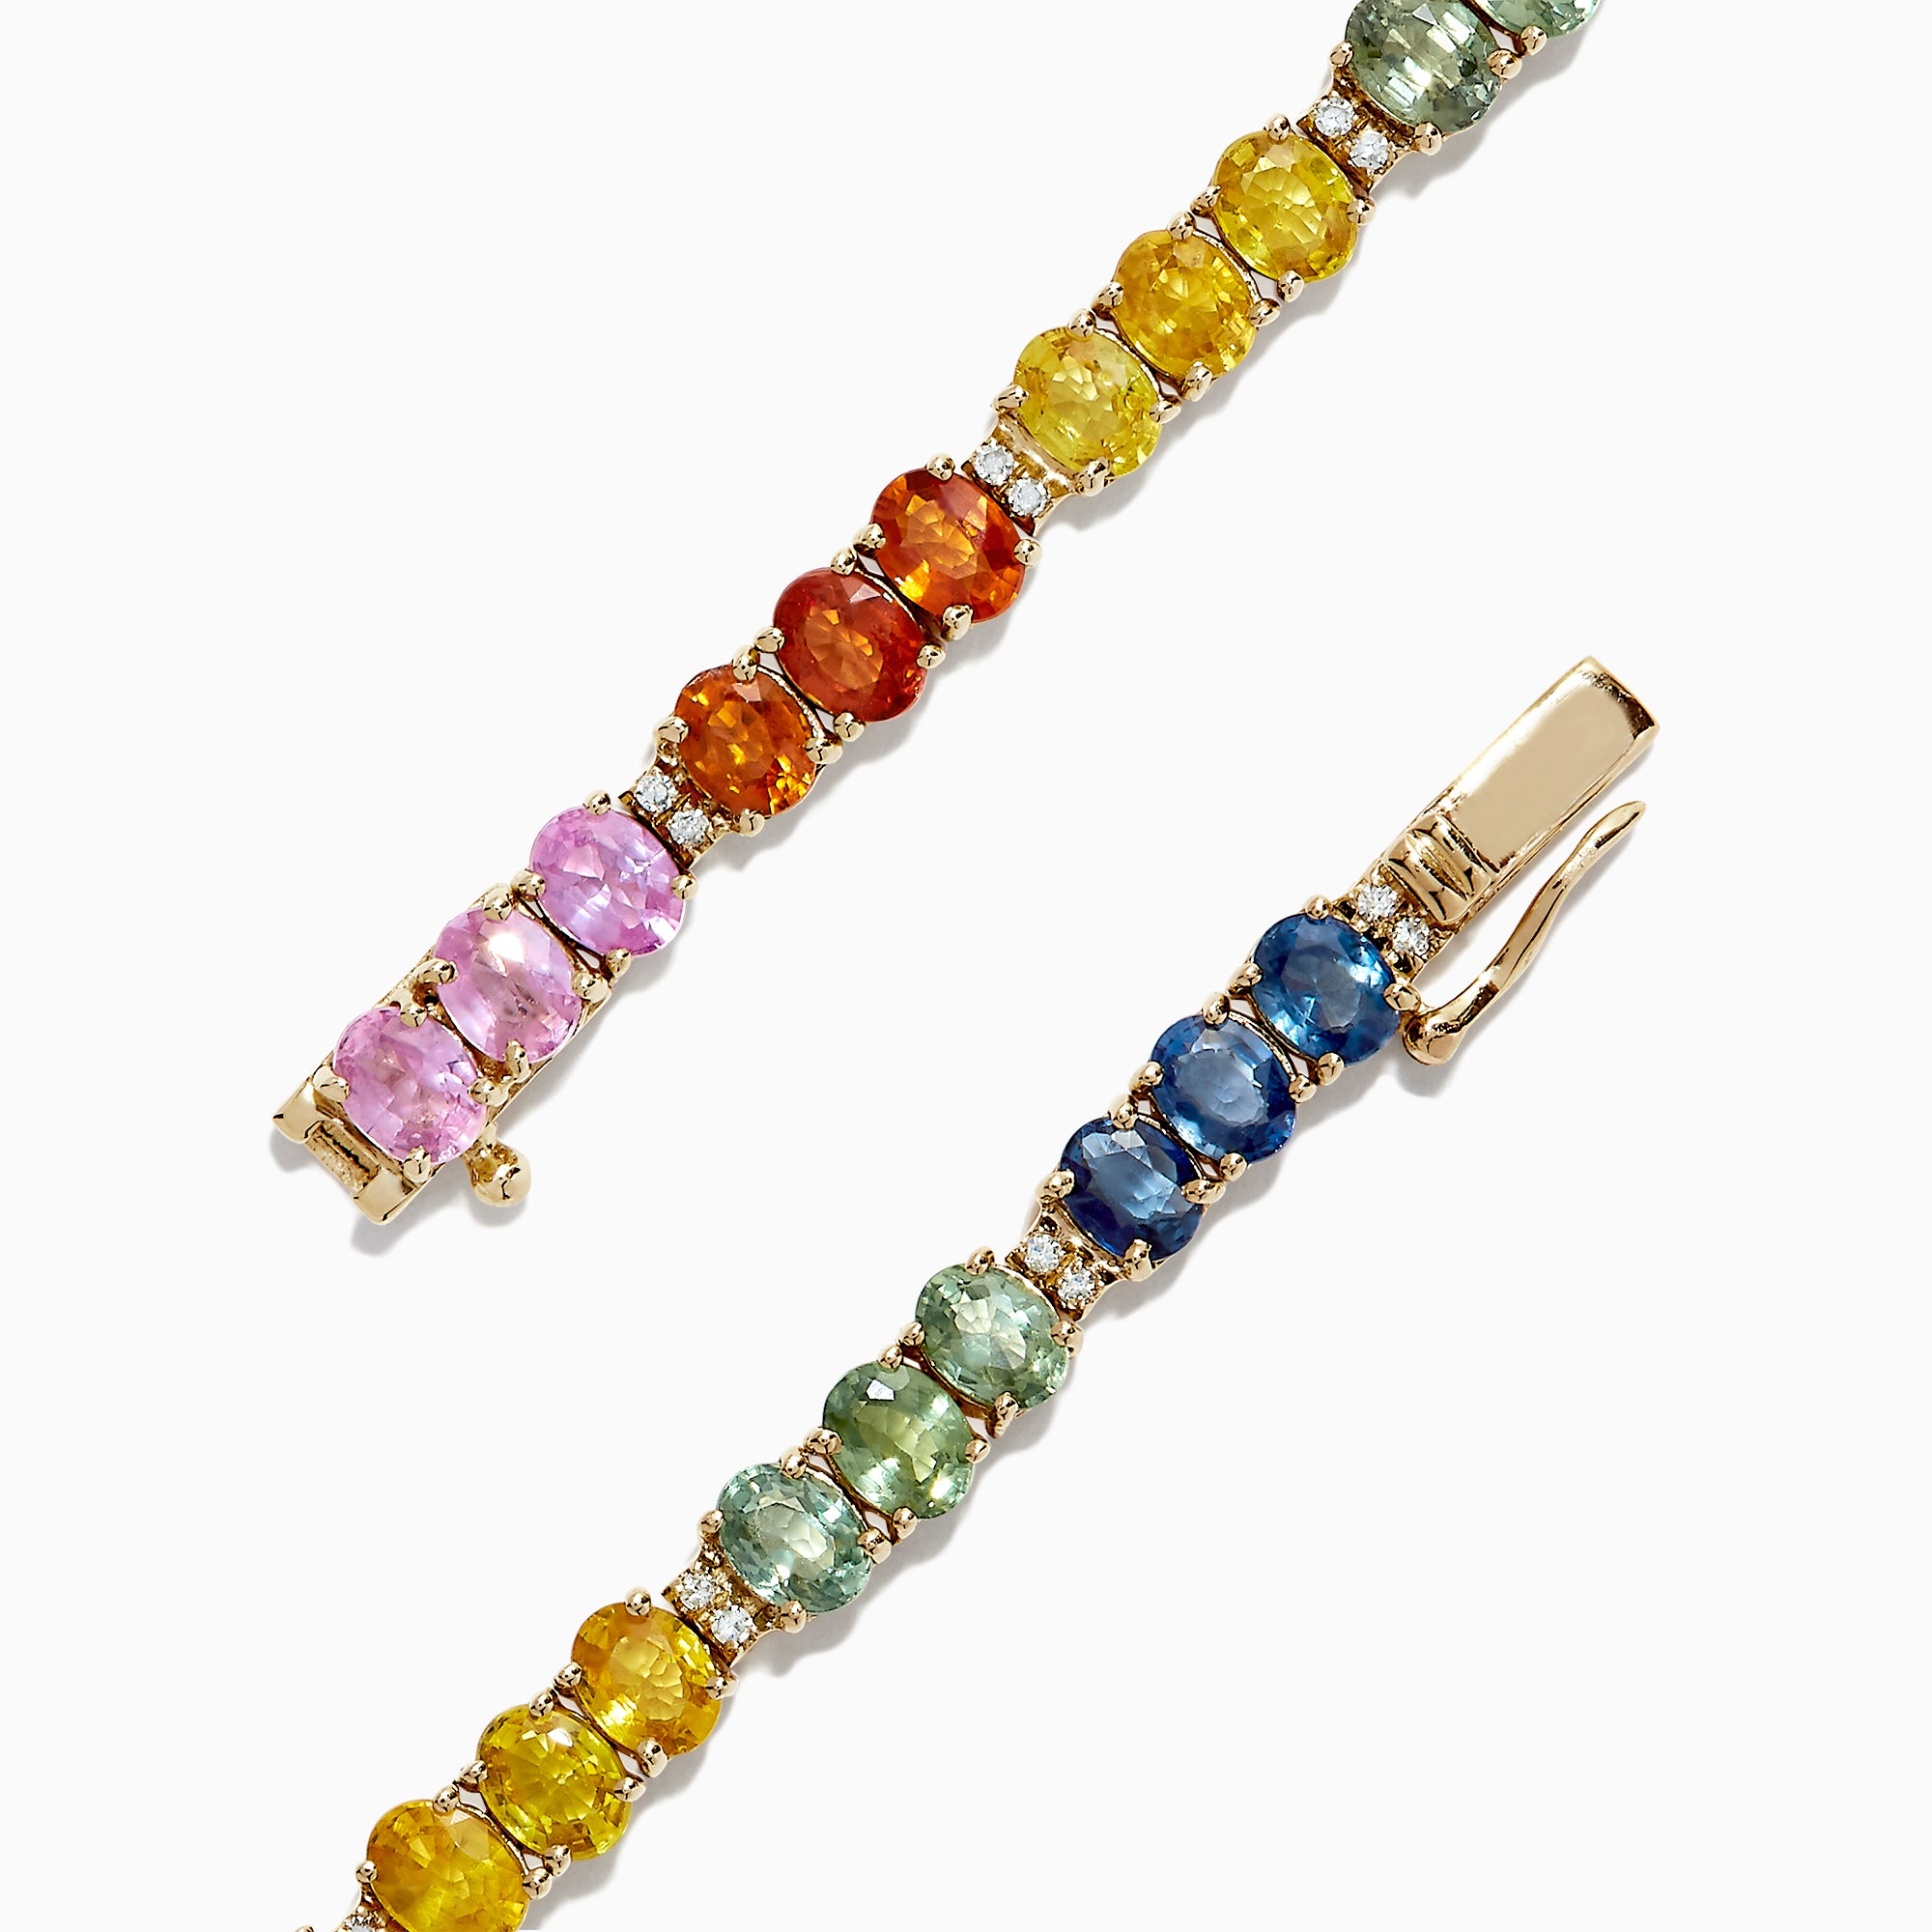 Effy Watercolors 14K Gold Multi Sapphire & Diamond Tennis Bracelet, 9.73 TW